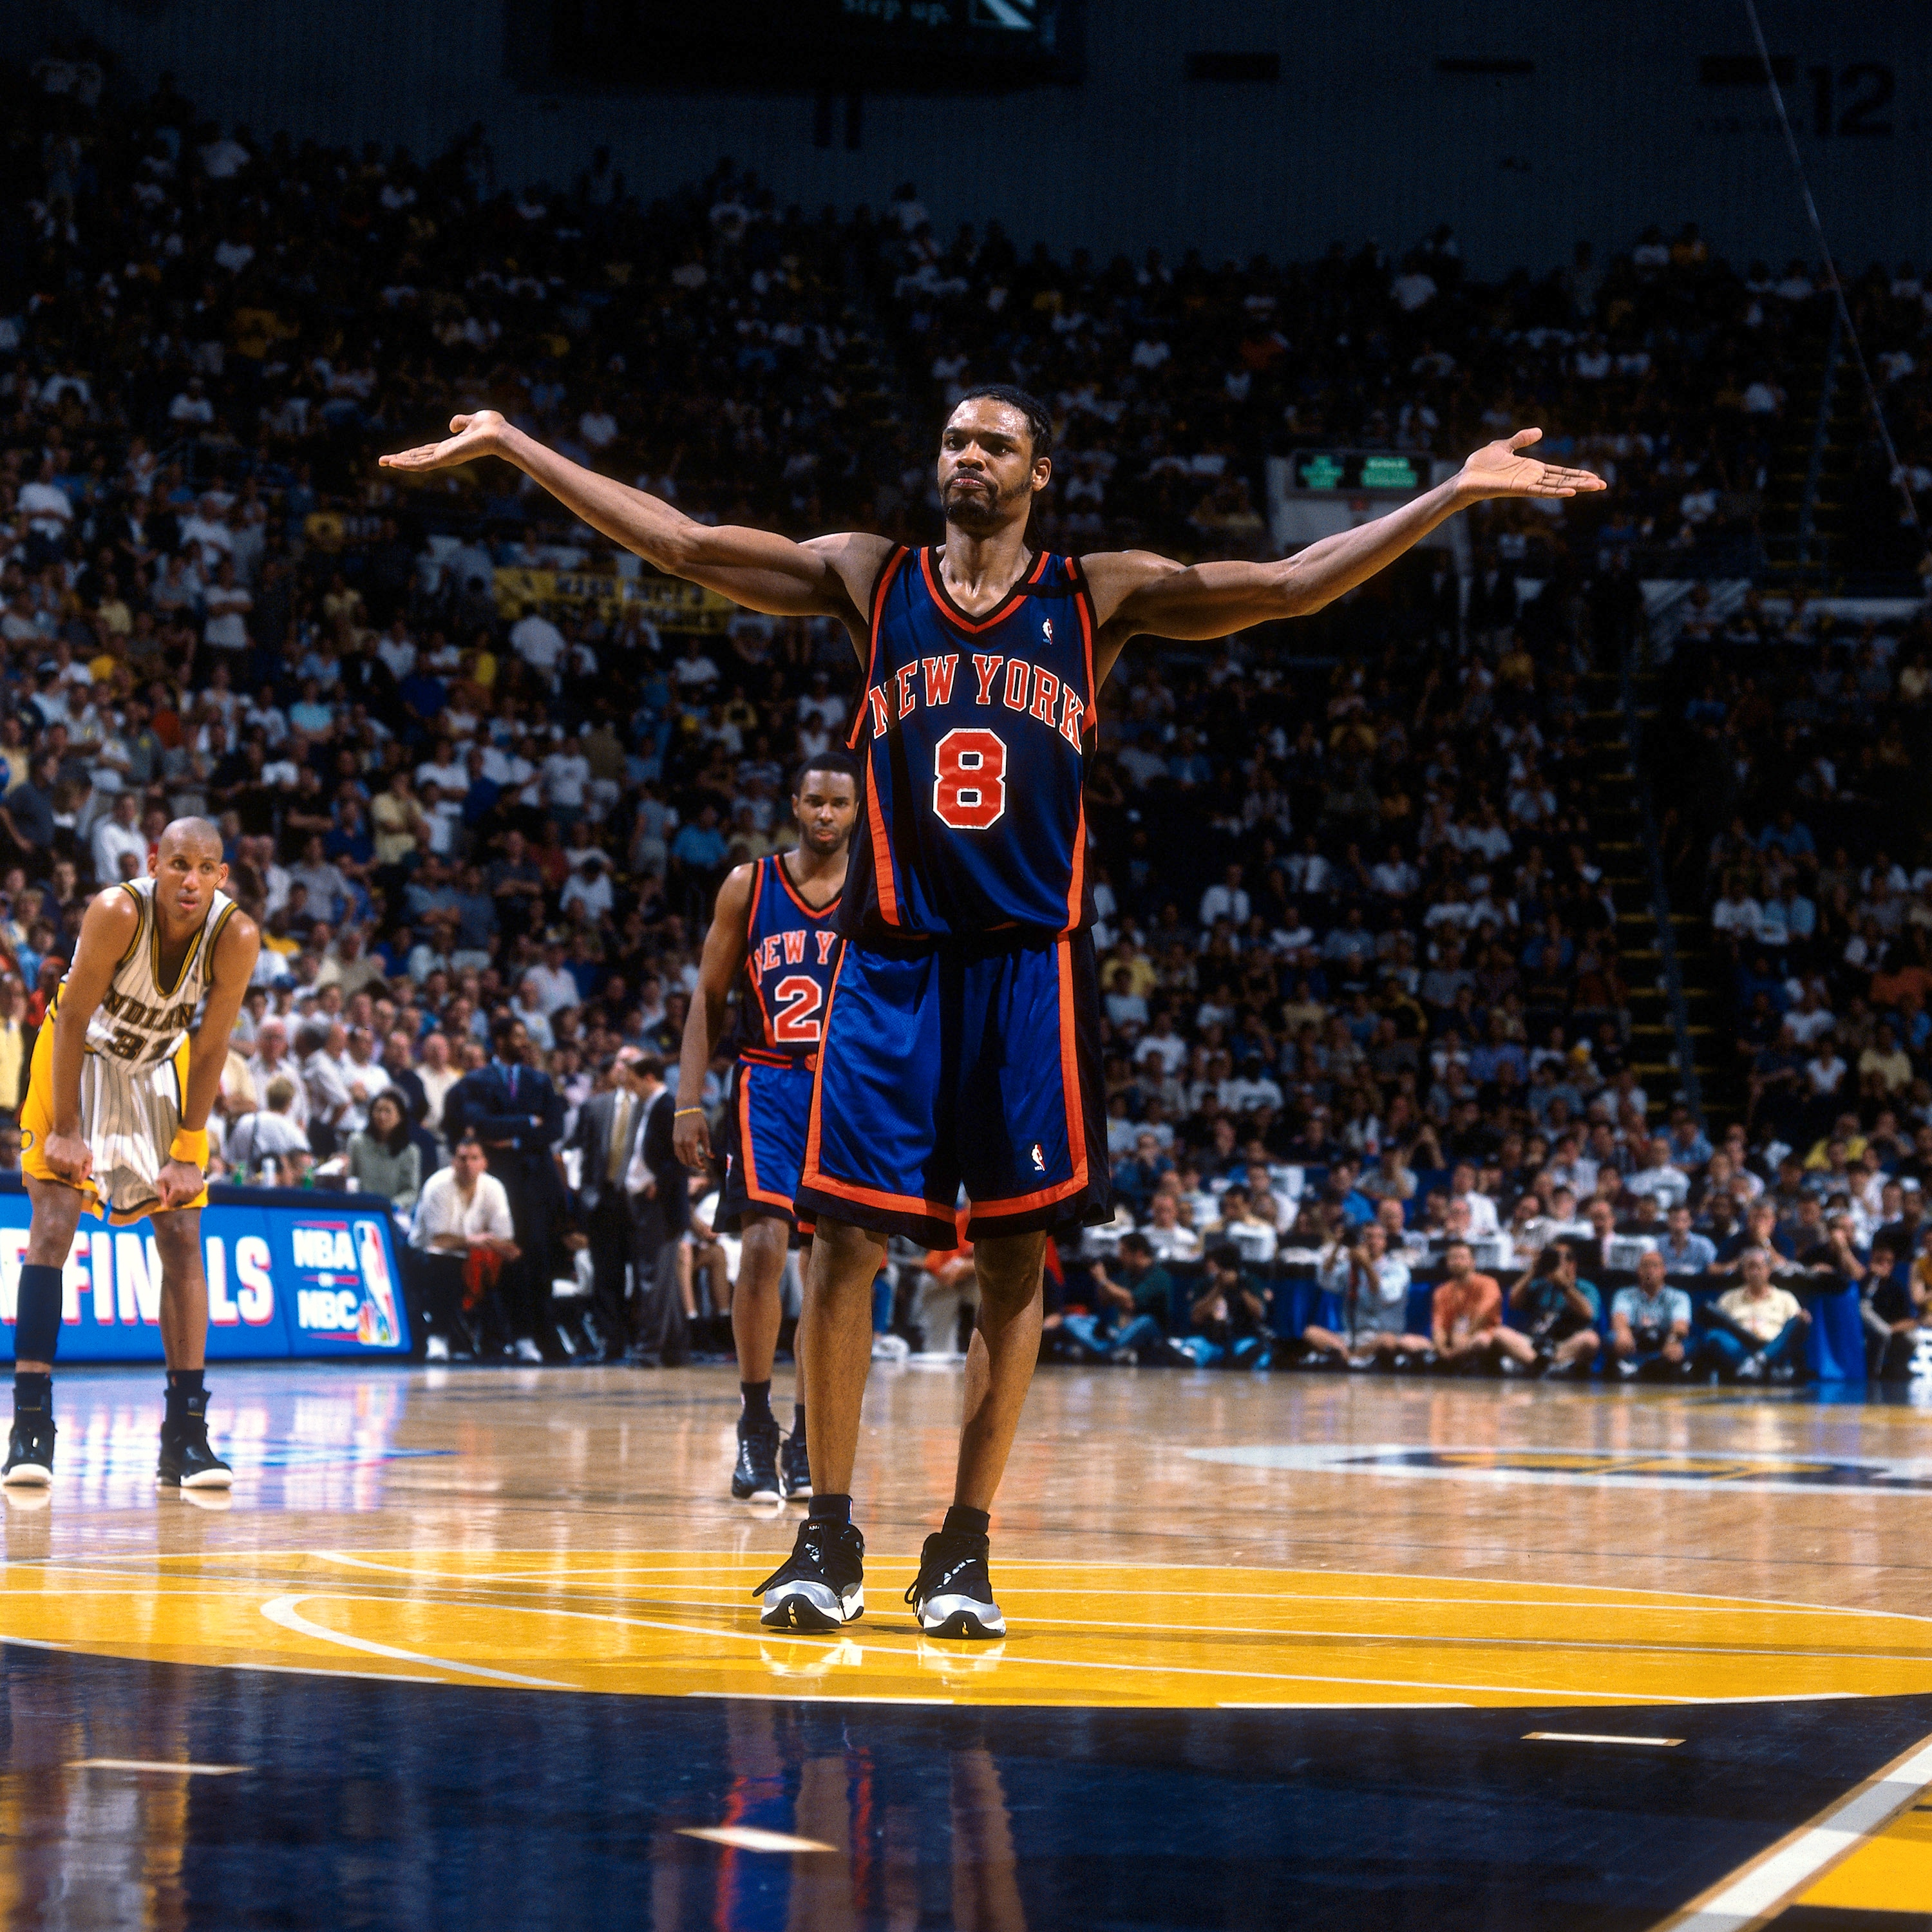 official photos e1627 0856f Gallery: Sprewell in the Orange and Blue | New York Knicks